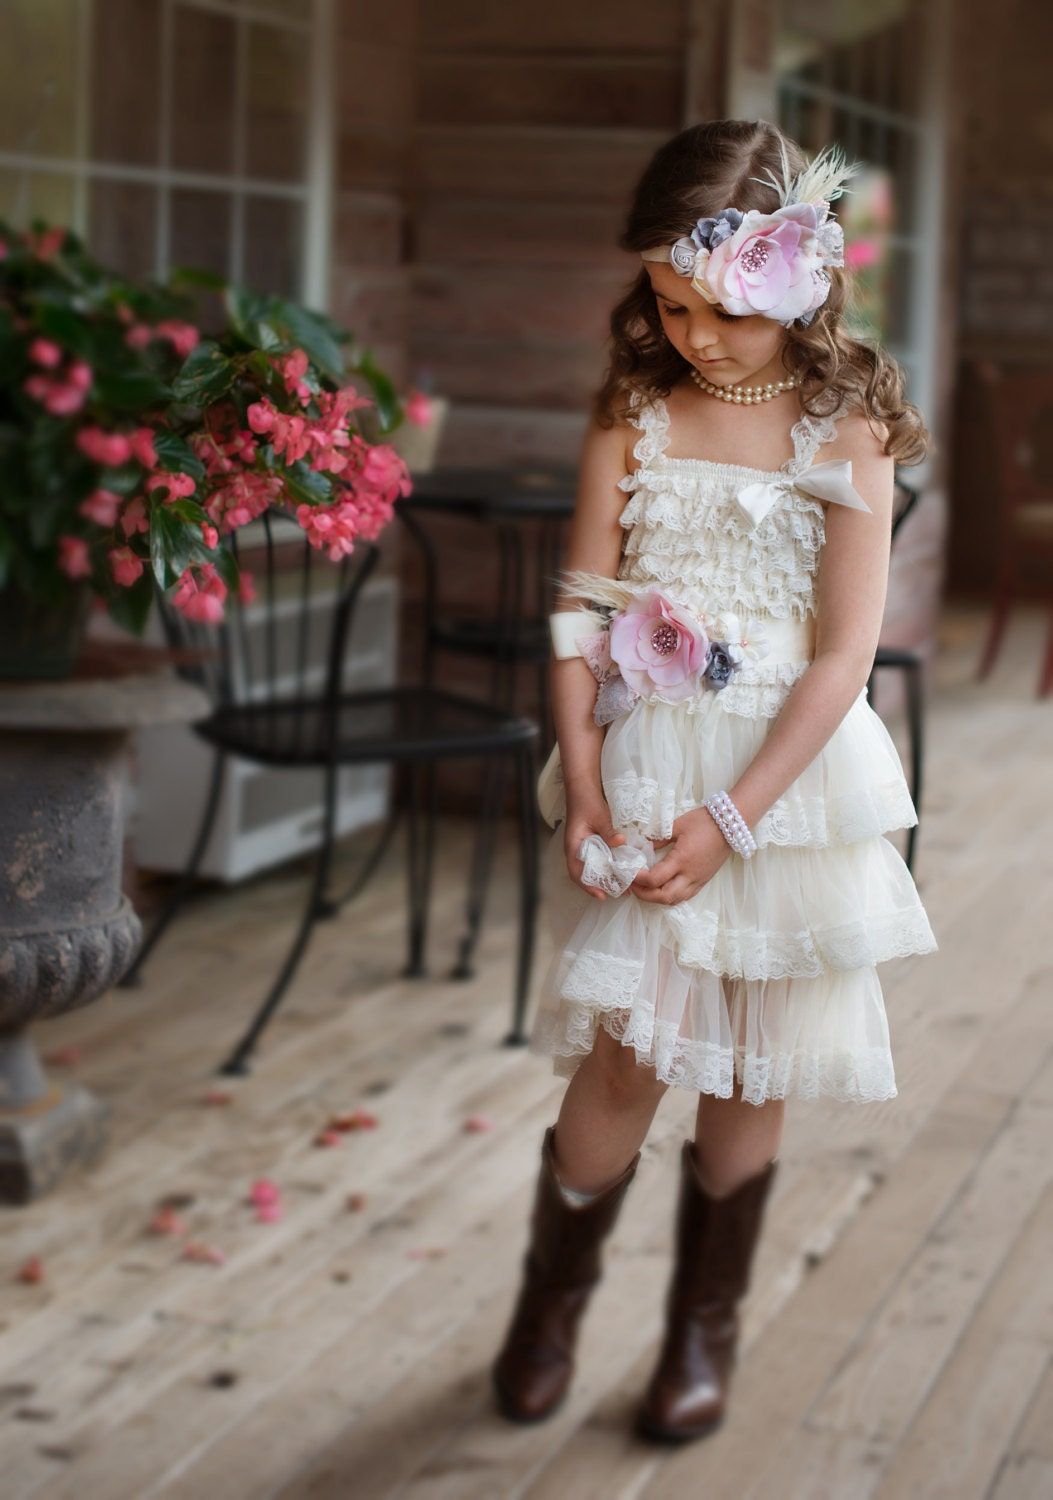 Flower girl dress set 3 pcs wedding flower girl shabby - Shabby chic outfit ideas ...